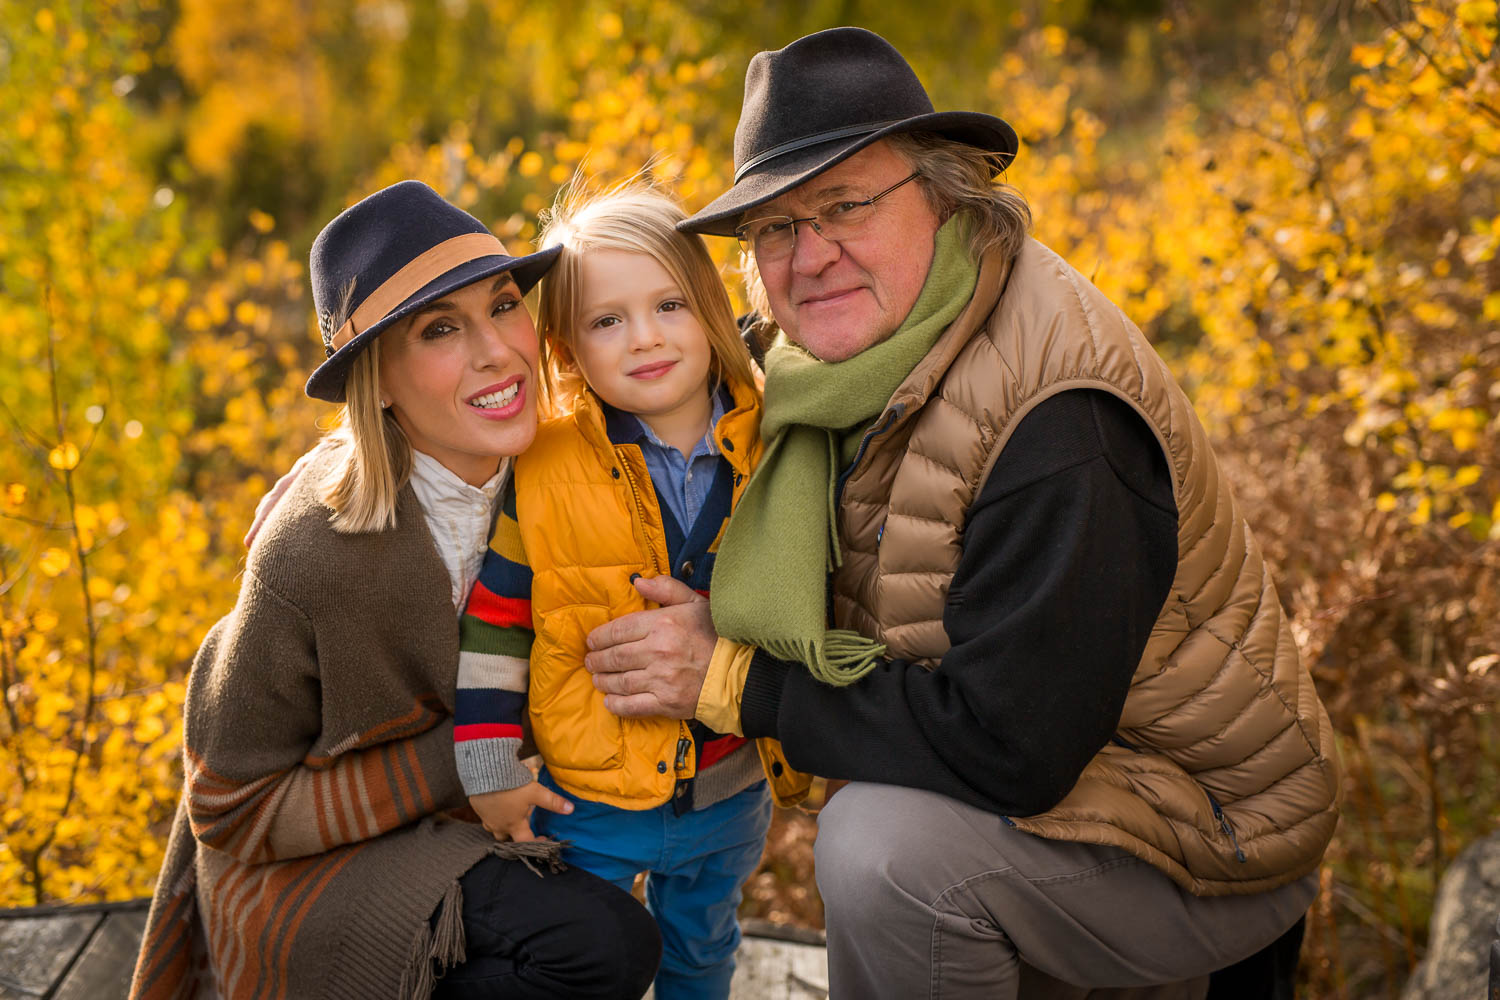 A-portrait-of-three-generations-in-autumn-by-Sandra-Jolly.jpg